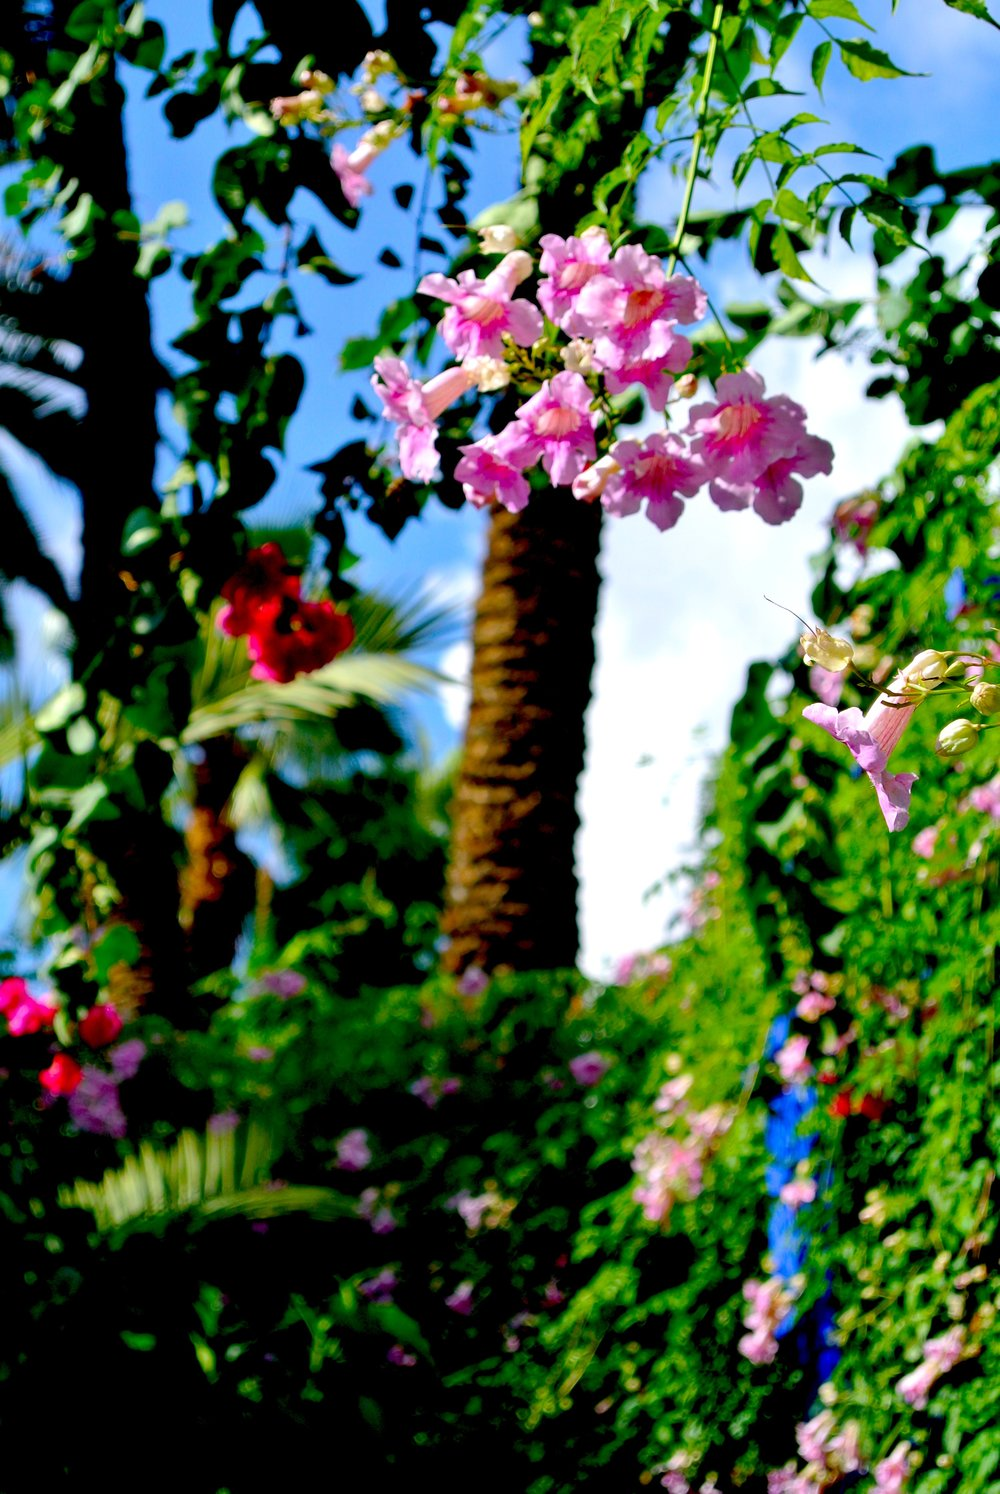 The garden is mostly green with periodic bursts of pink and red